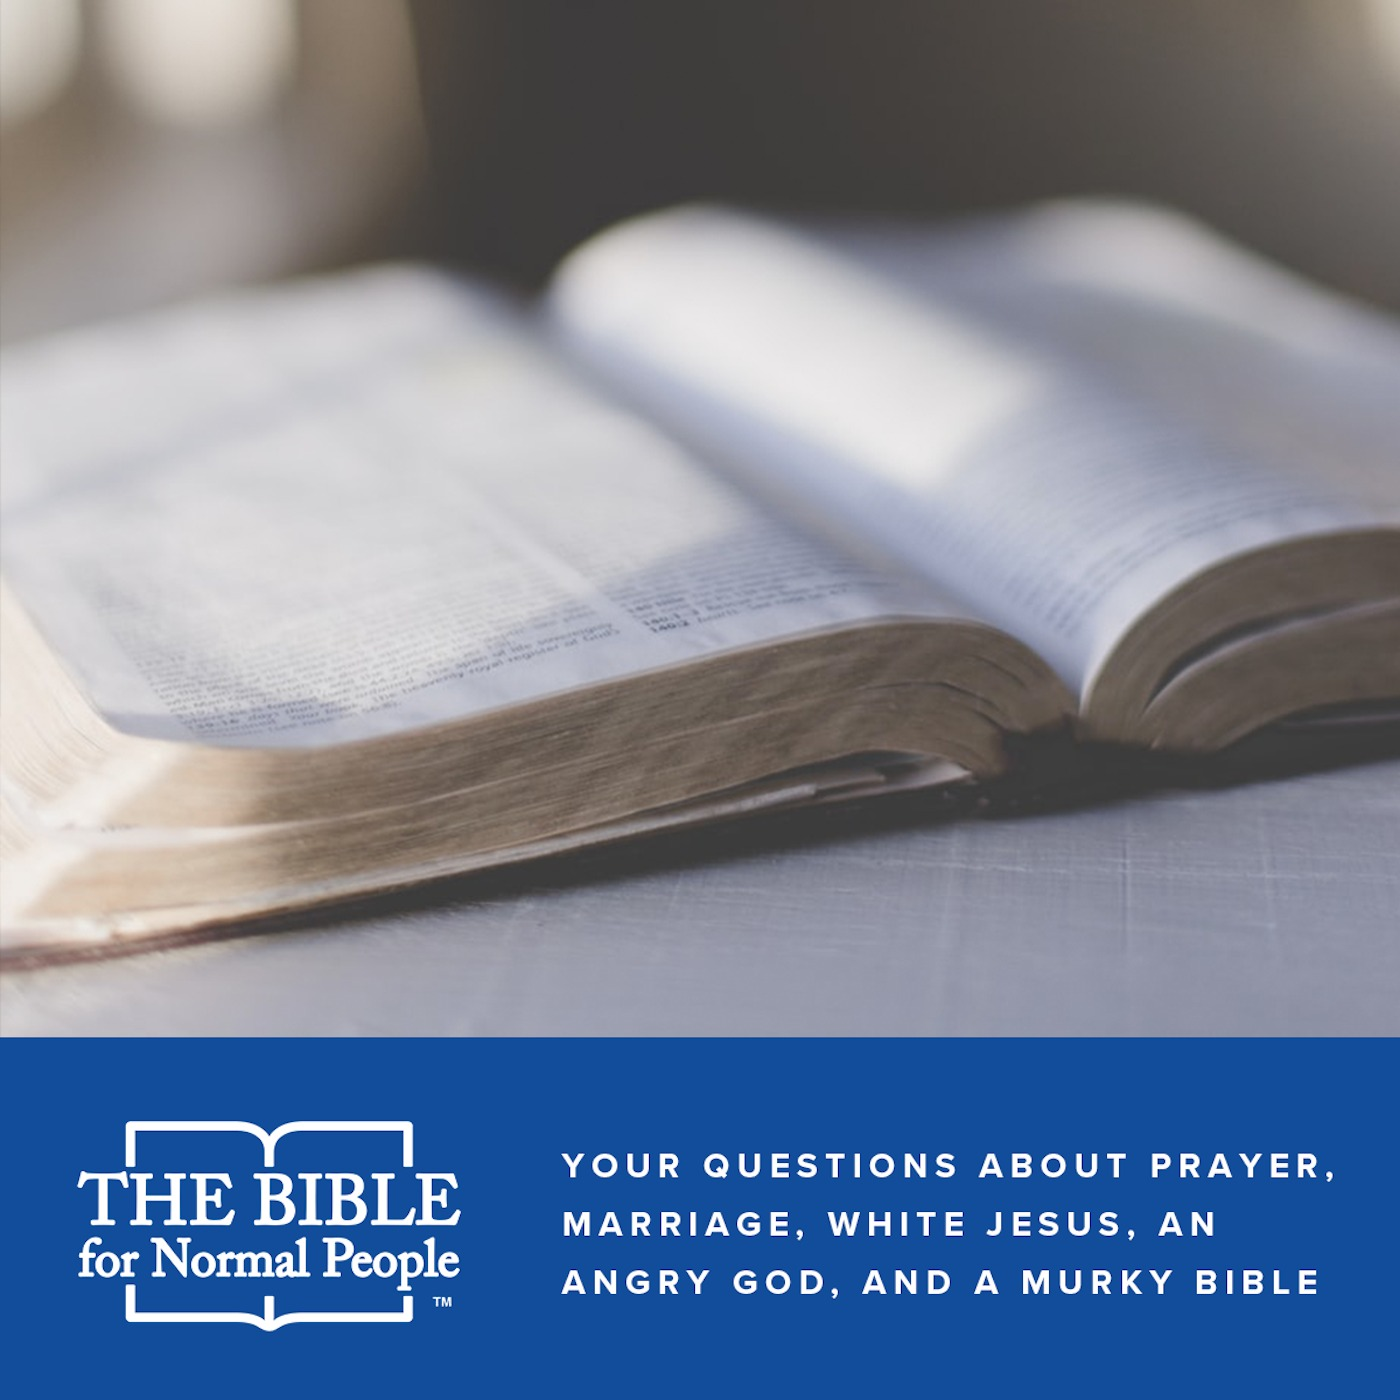 Episode 156: Pete and Jared - Your Questions About Prayer, Marriage, White Jesus, an Angry God, and a Murky Bible